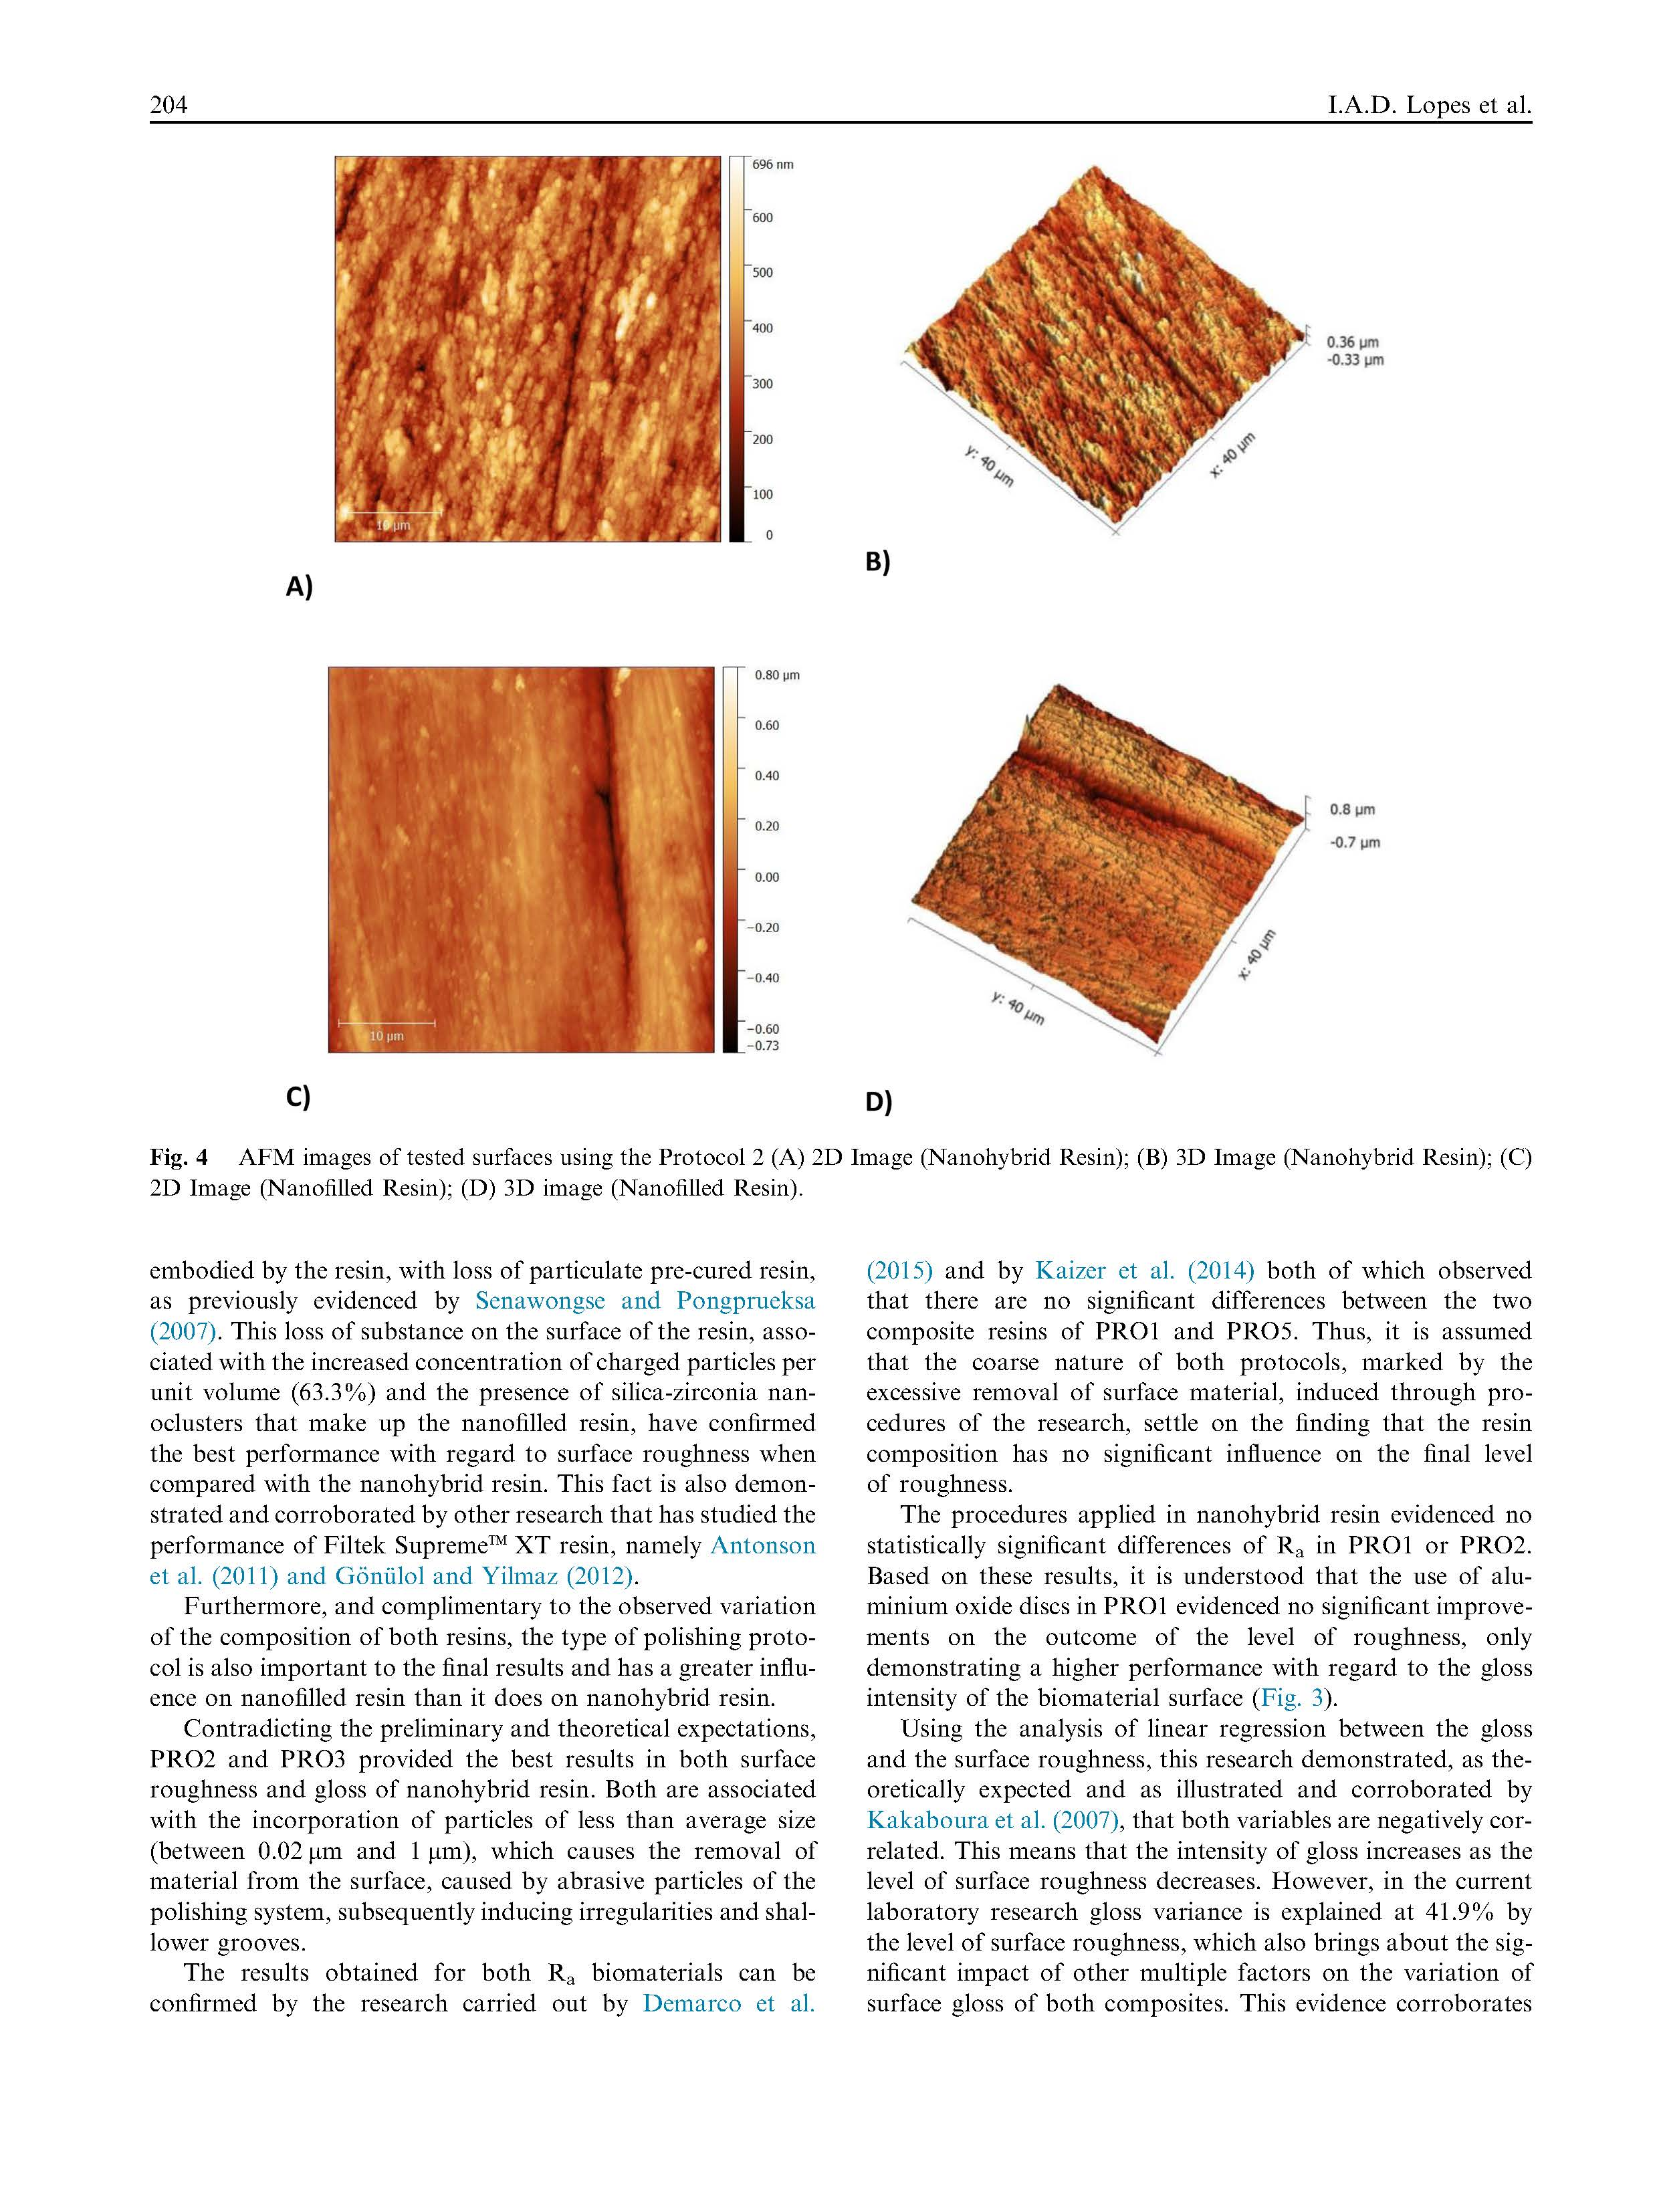 The effect of different finishing and polishing techniques on surface roughness and gloss of two nanocomposites_Page_08.jpg